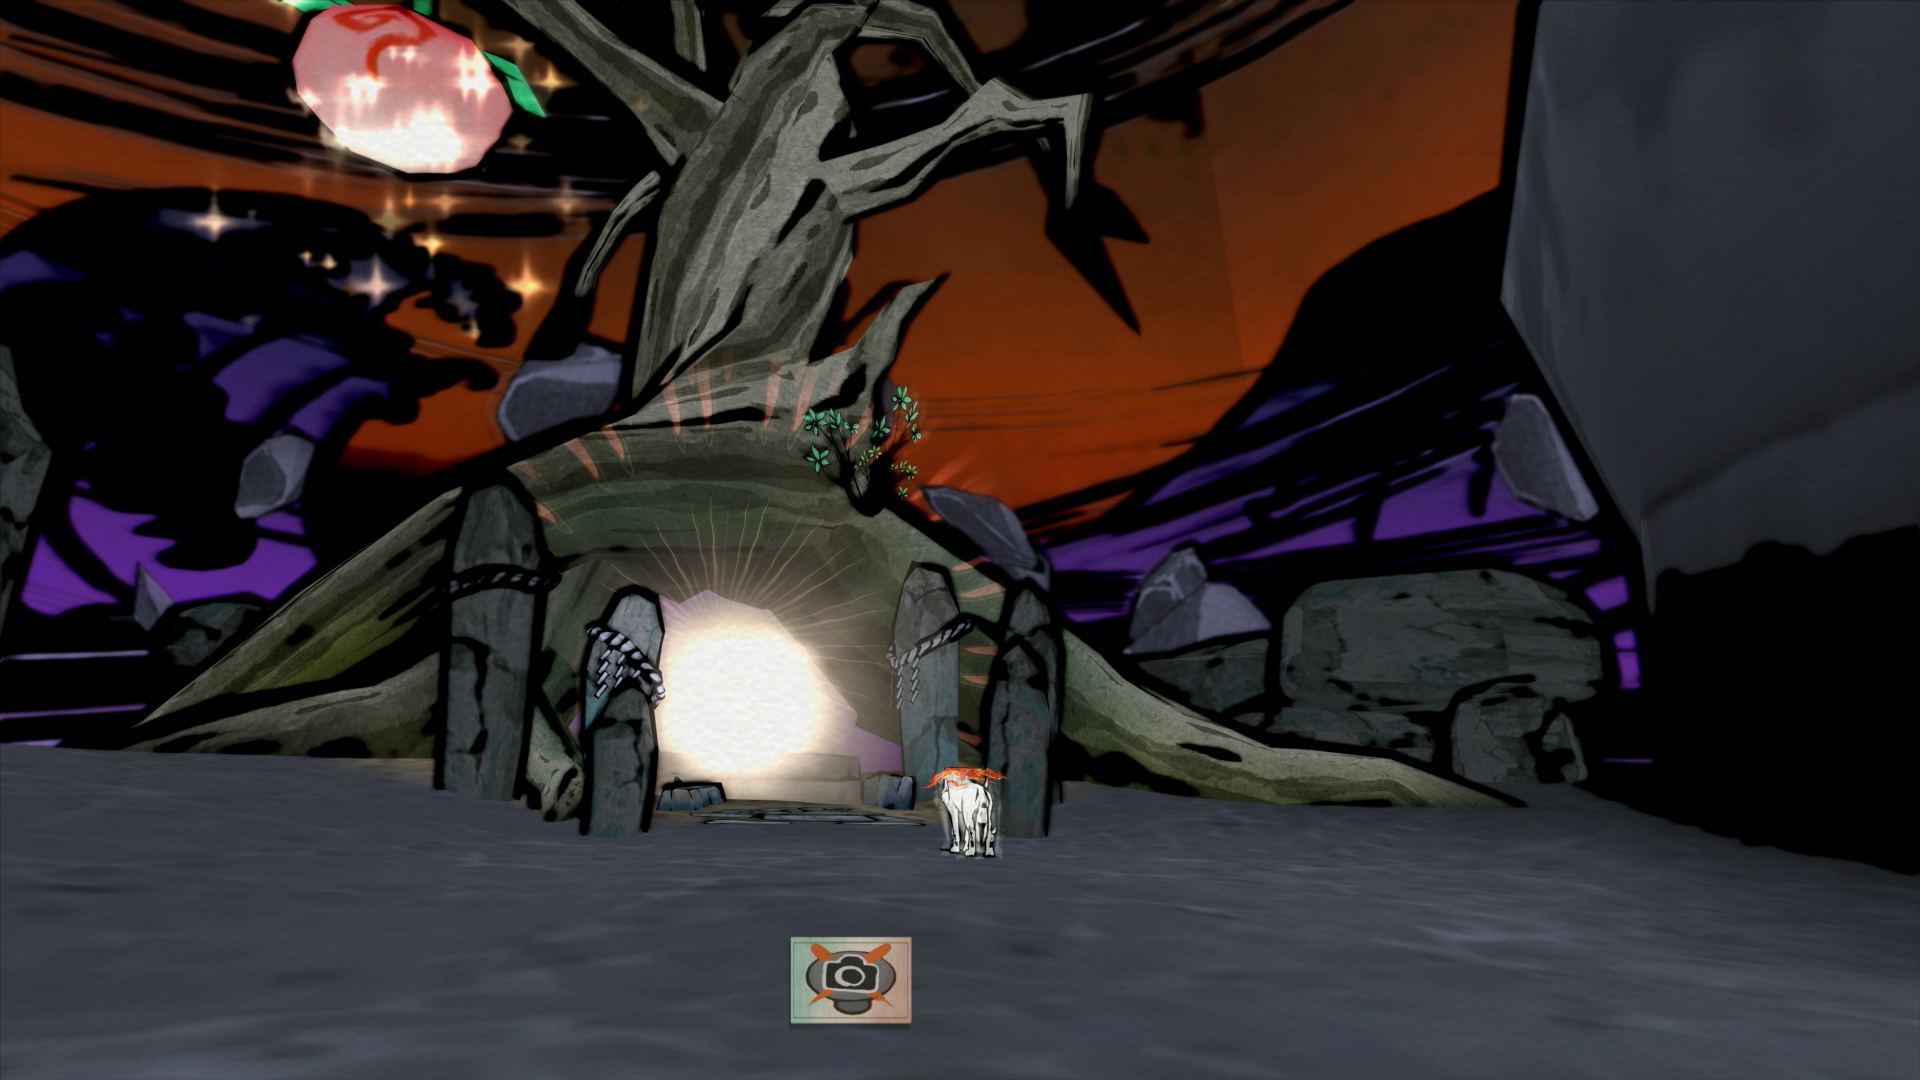 Okami Hds Switch Release Is A Nigh On Flawless Port Ps3 Parts Diagram Playstation Action Offered By Sources From Model Darker Scenes Tend To Fare Better Across Generations Retaining The Look Of 2 Original In High Resolutions And Versions Both